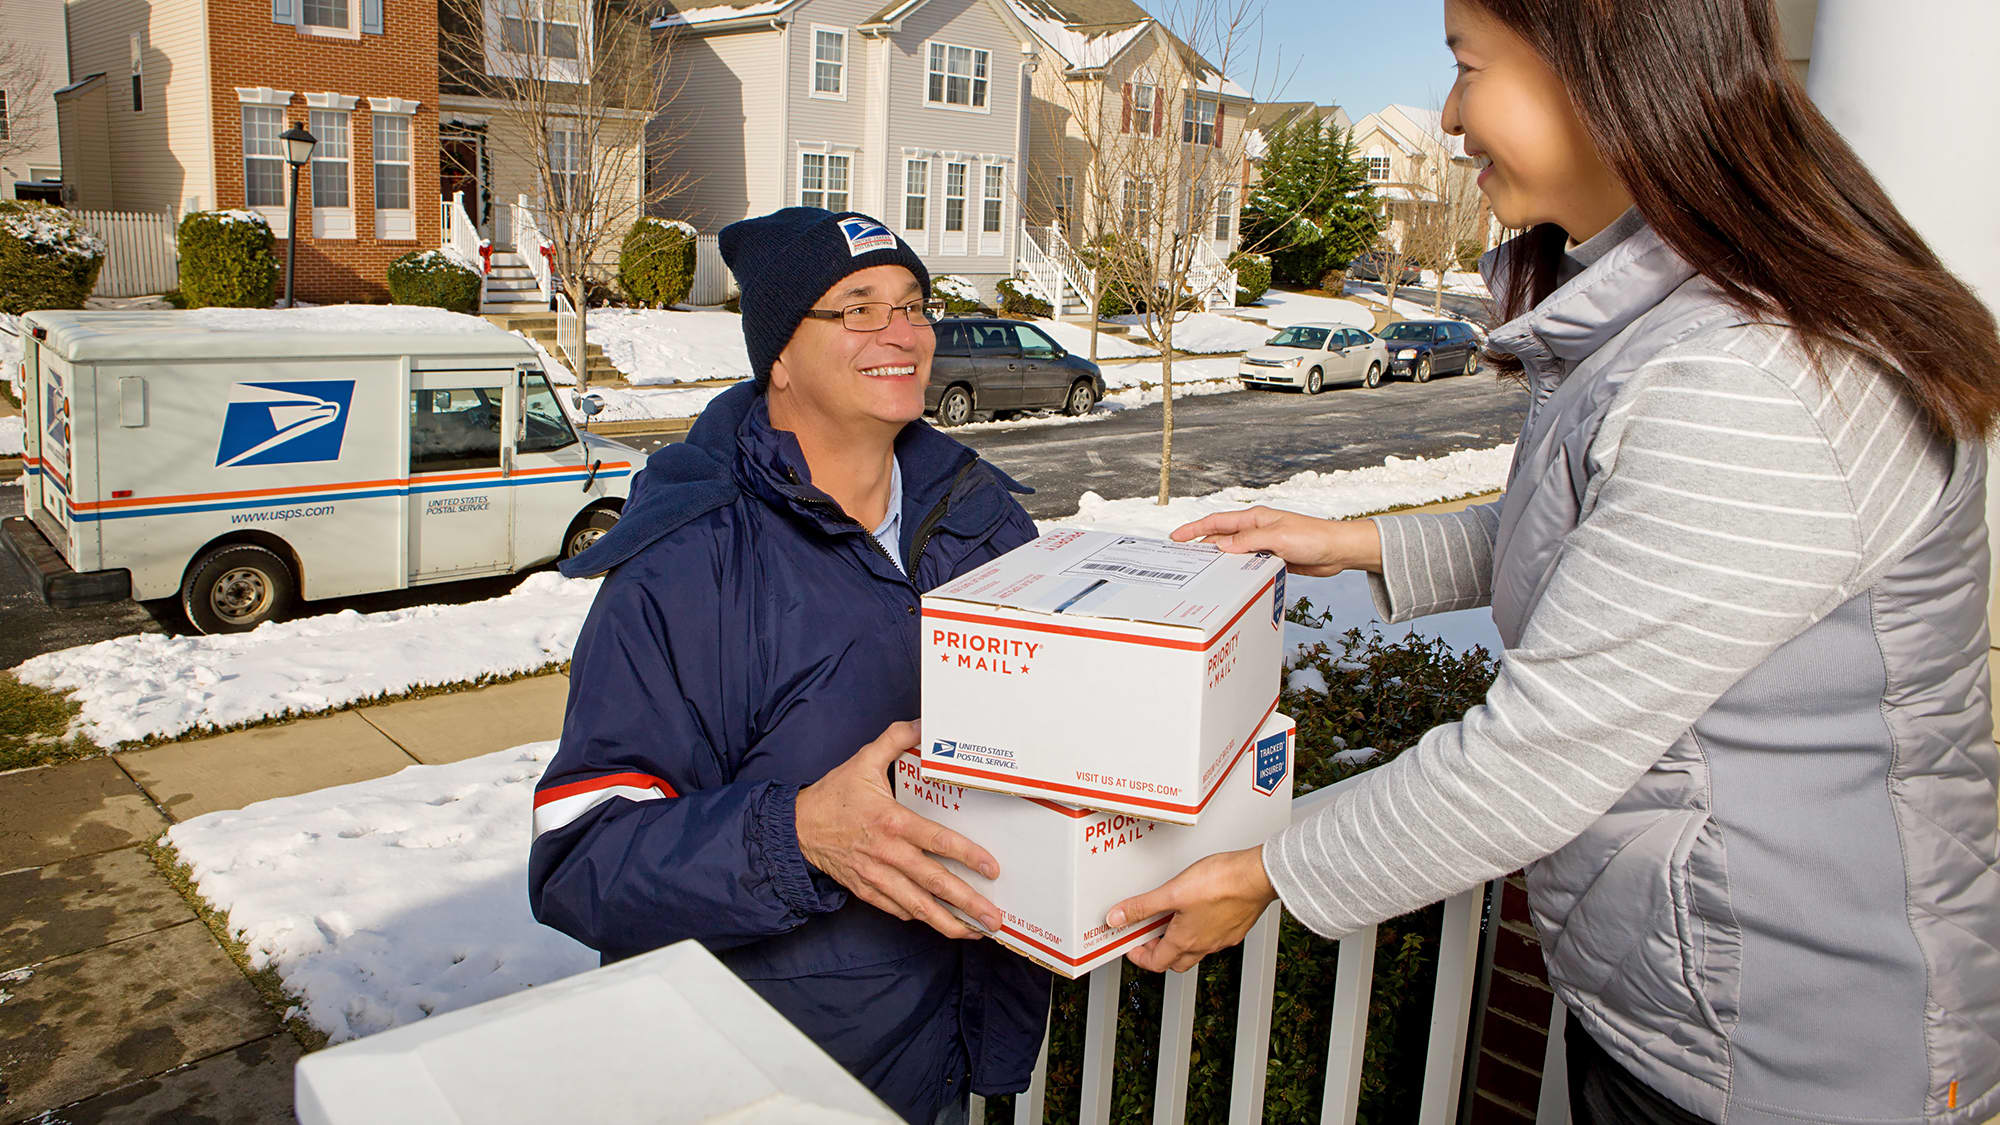 Postal service wants to deliver your holiday items on time